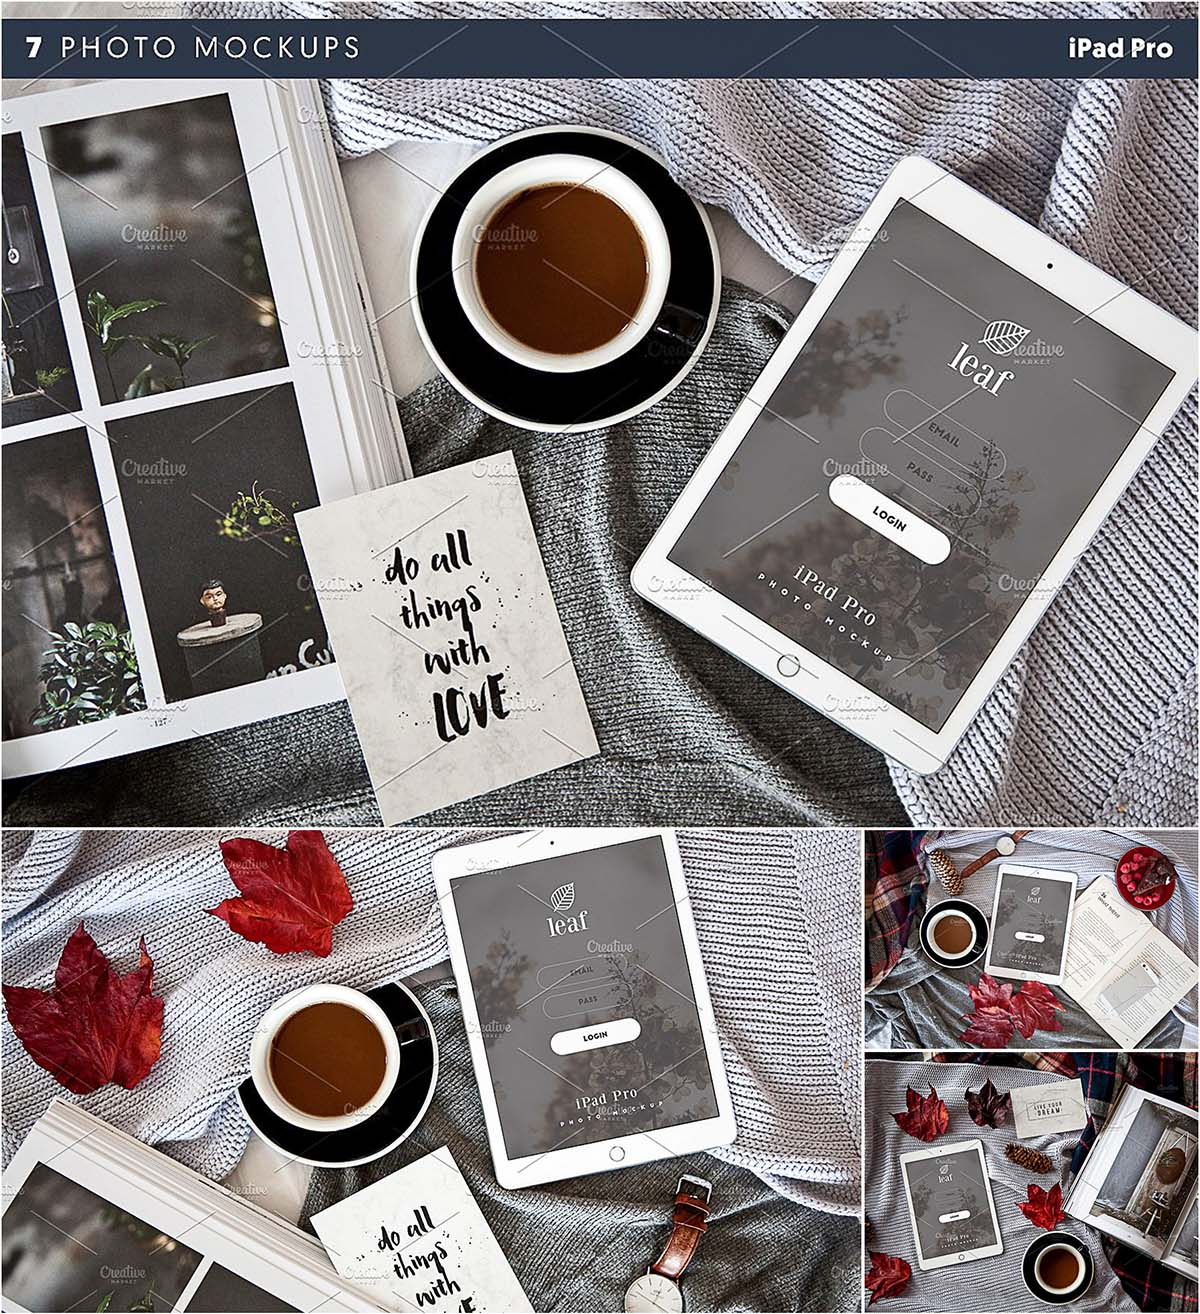 ipad photo mockups pro